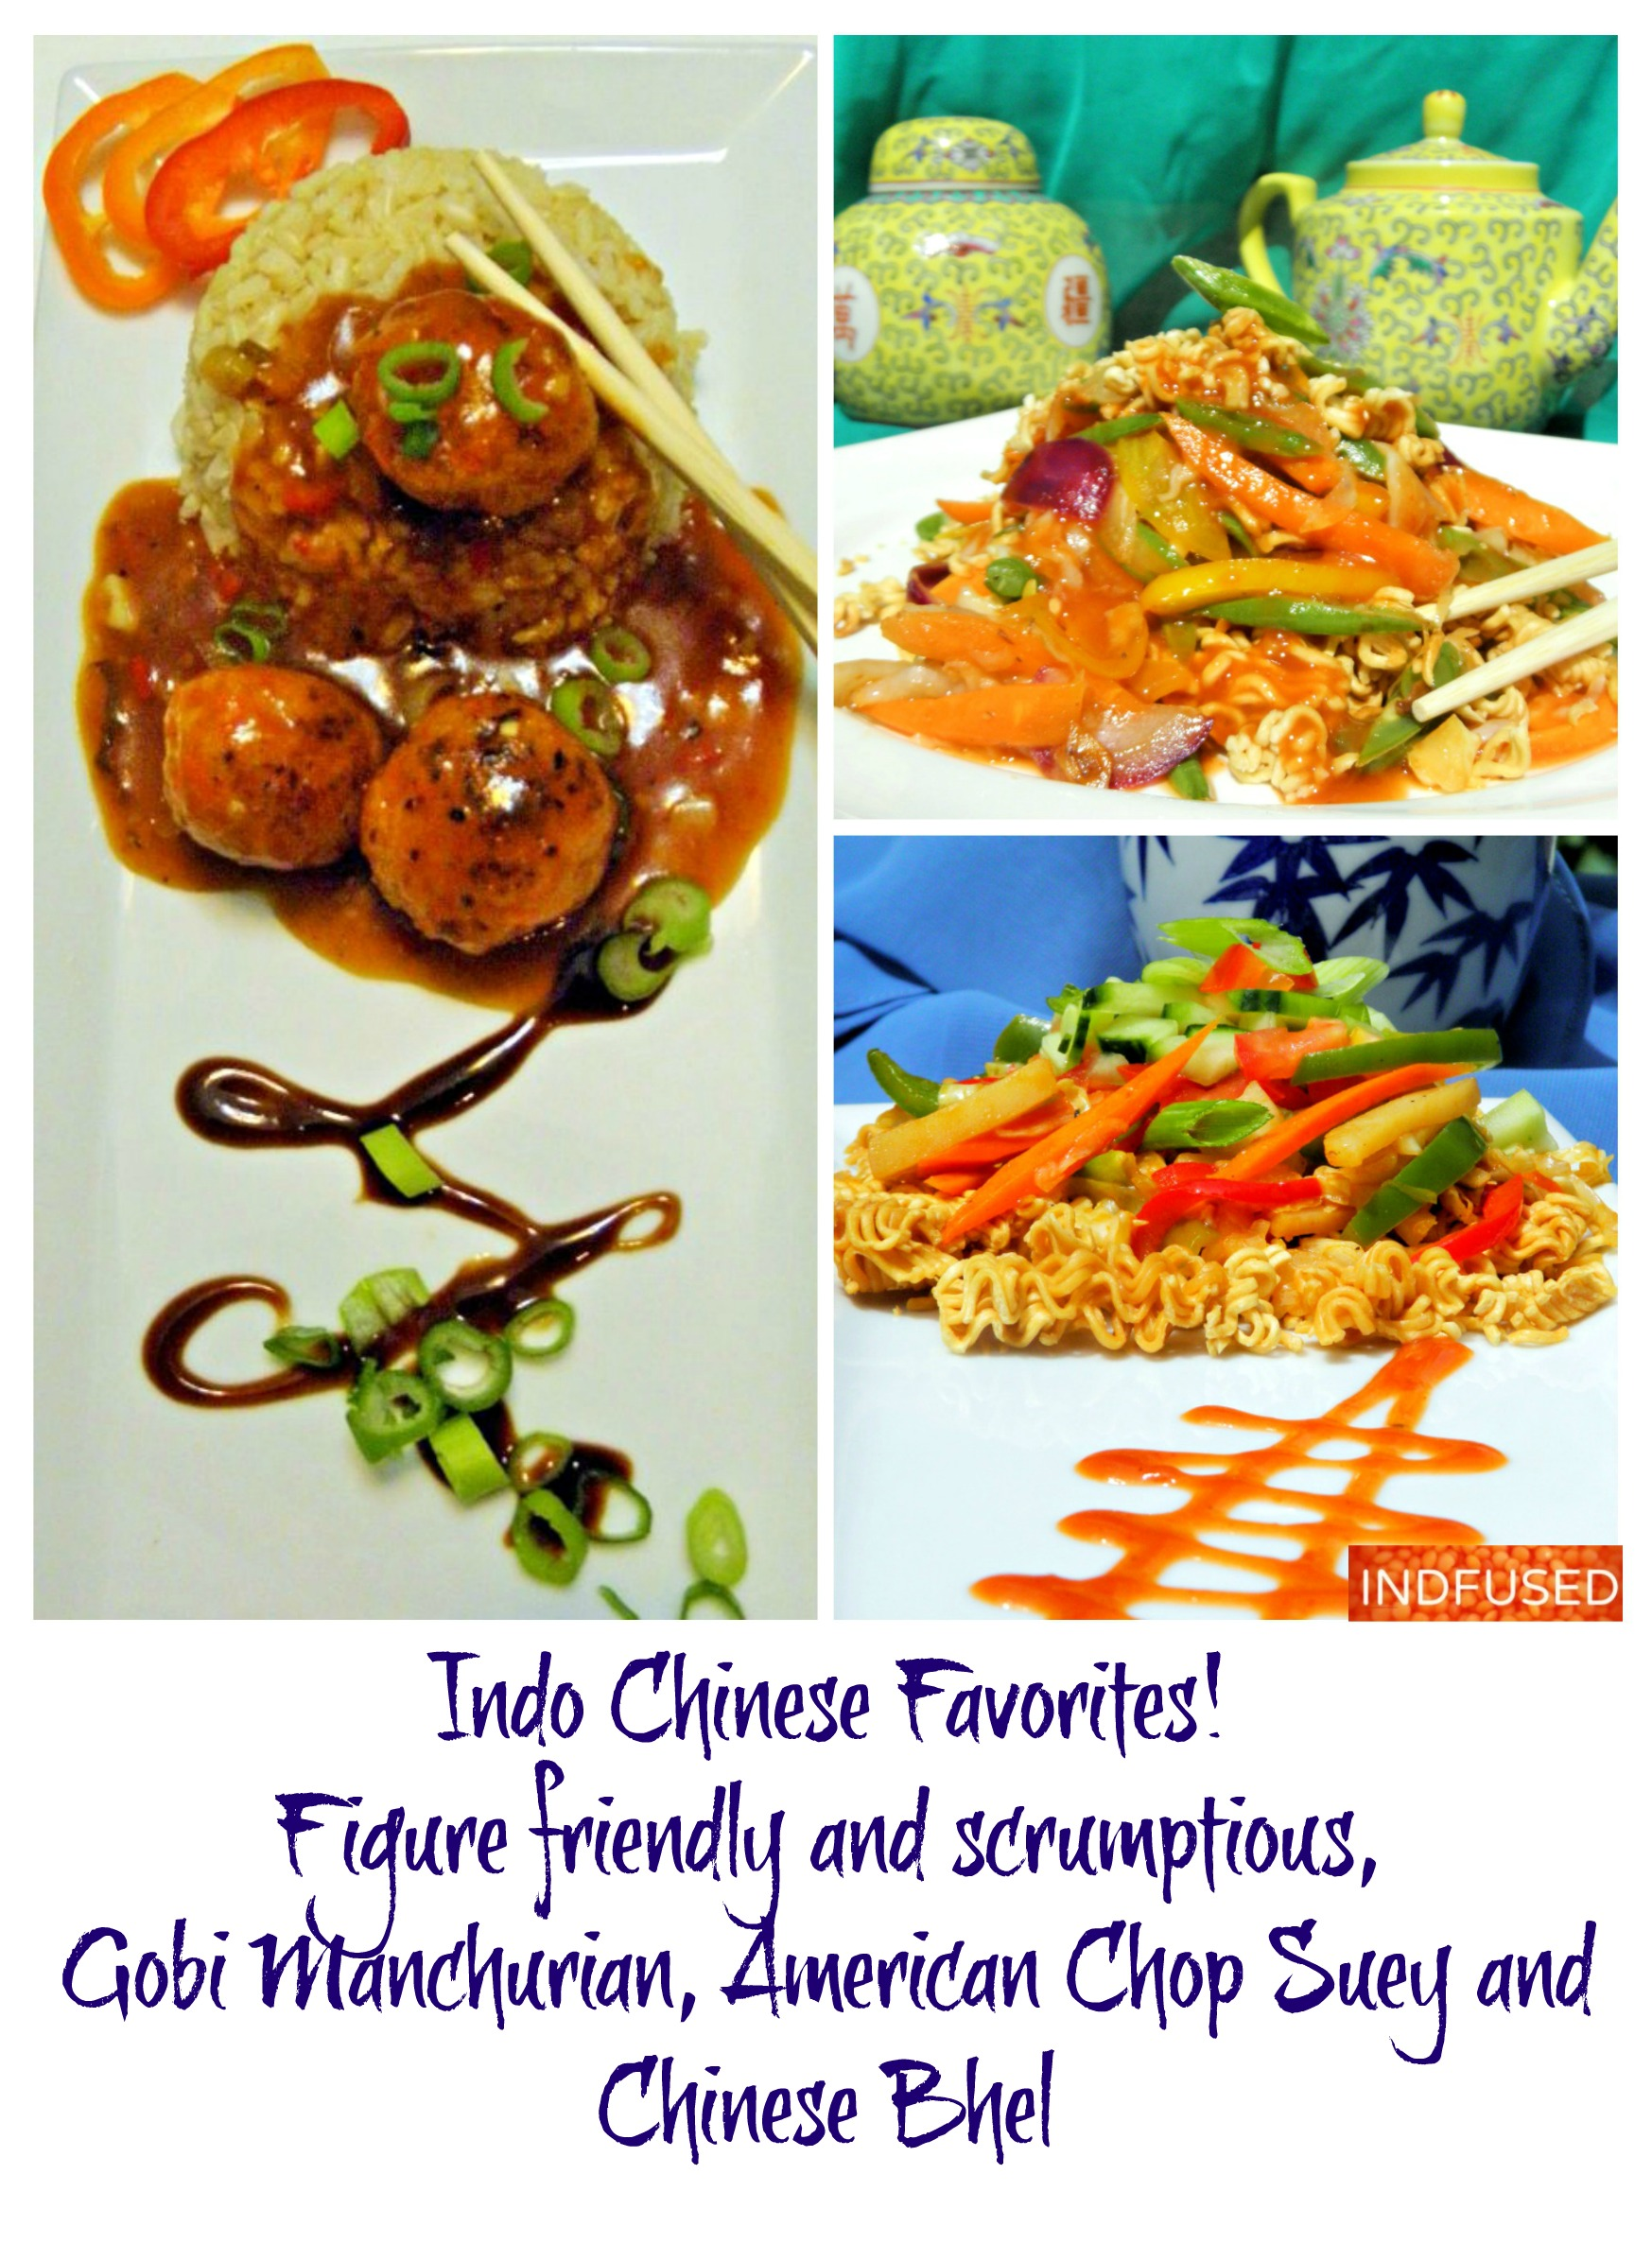 Indian Chinese Cuisine Favorites